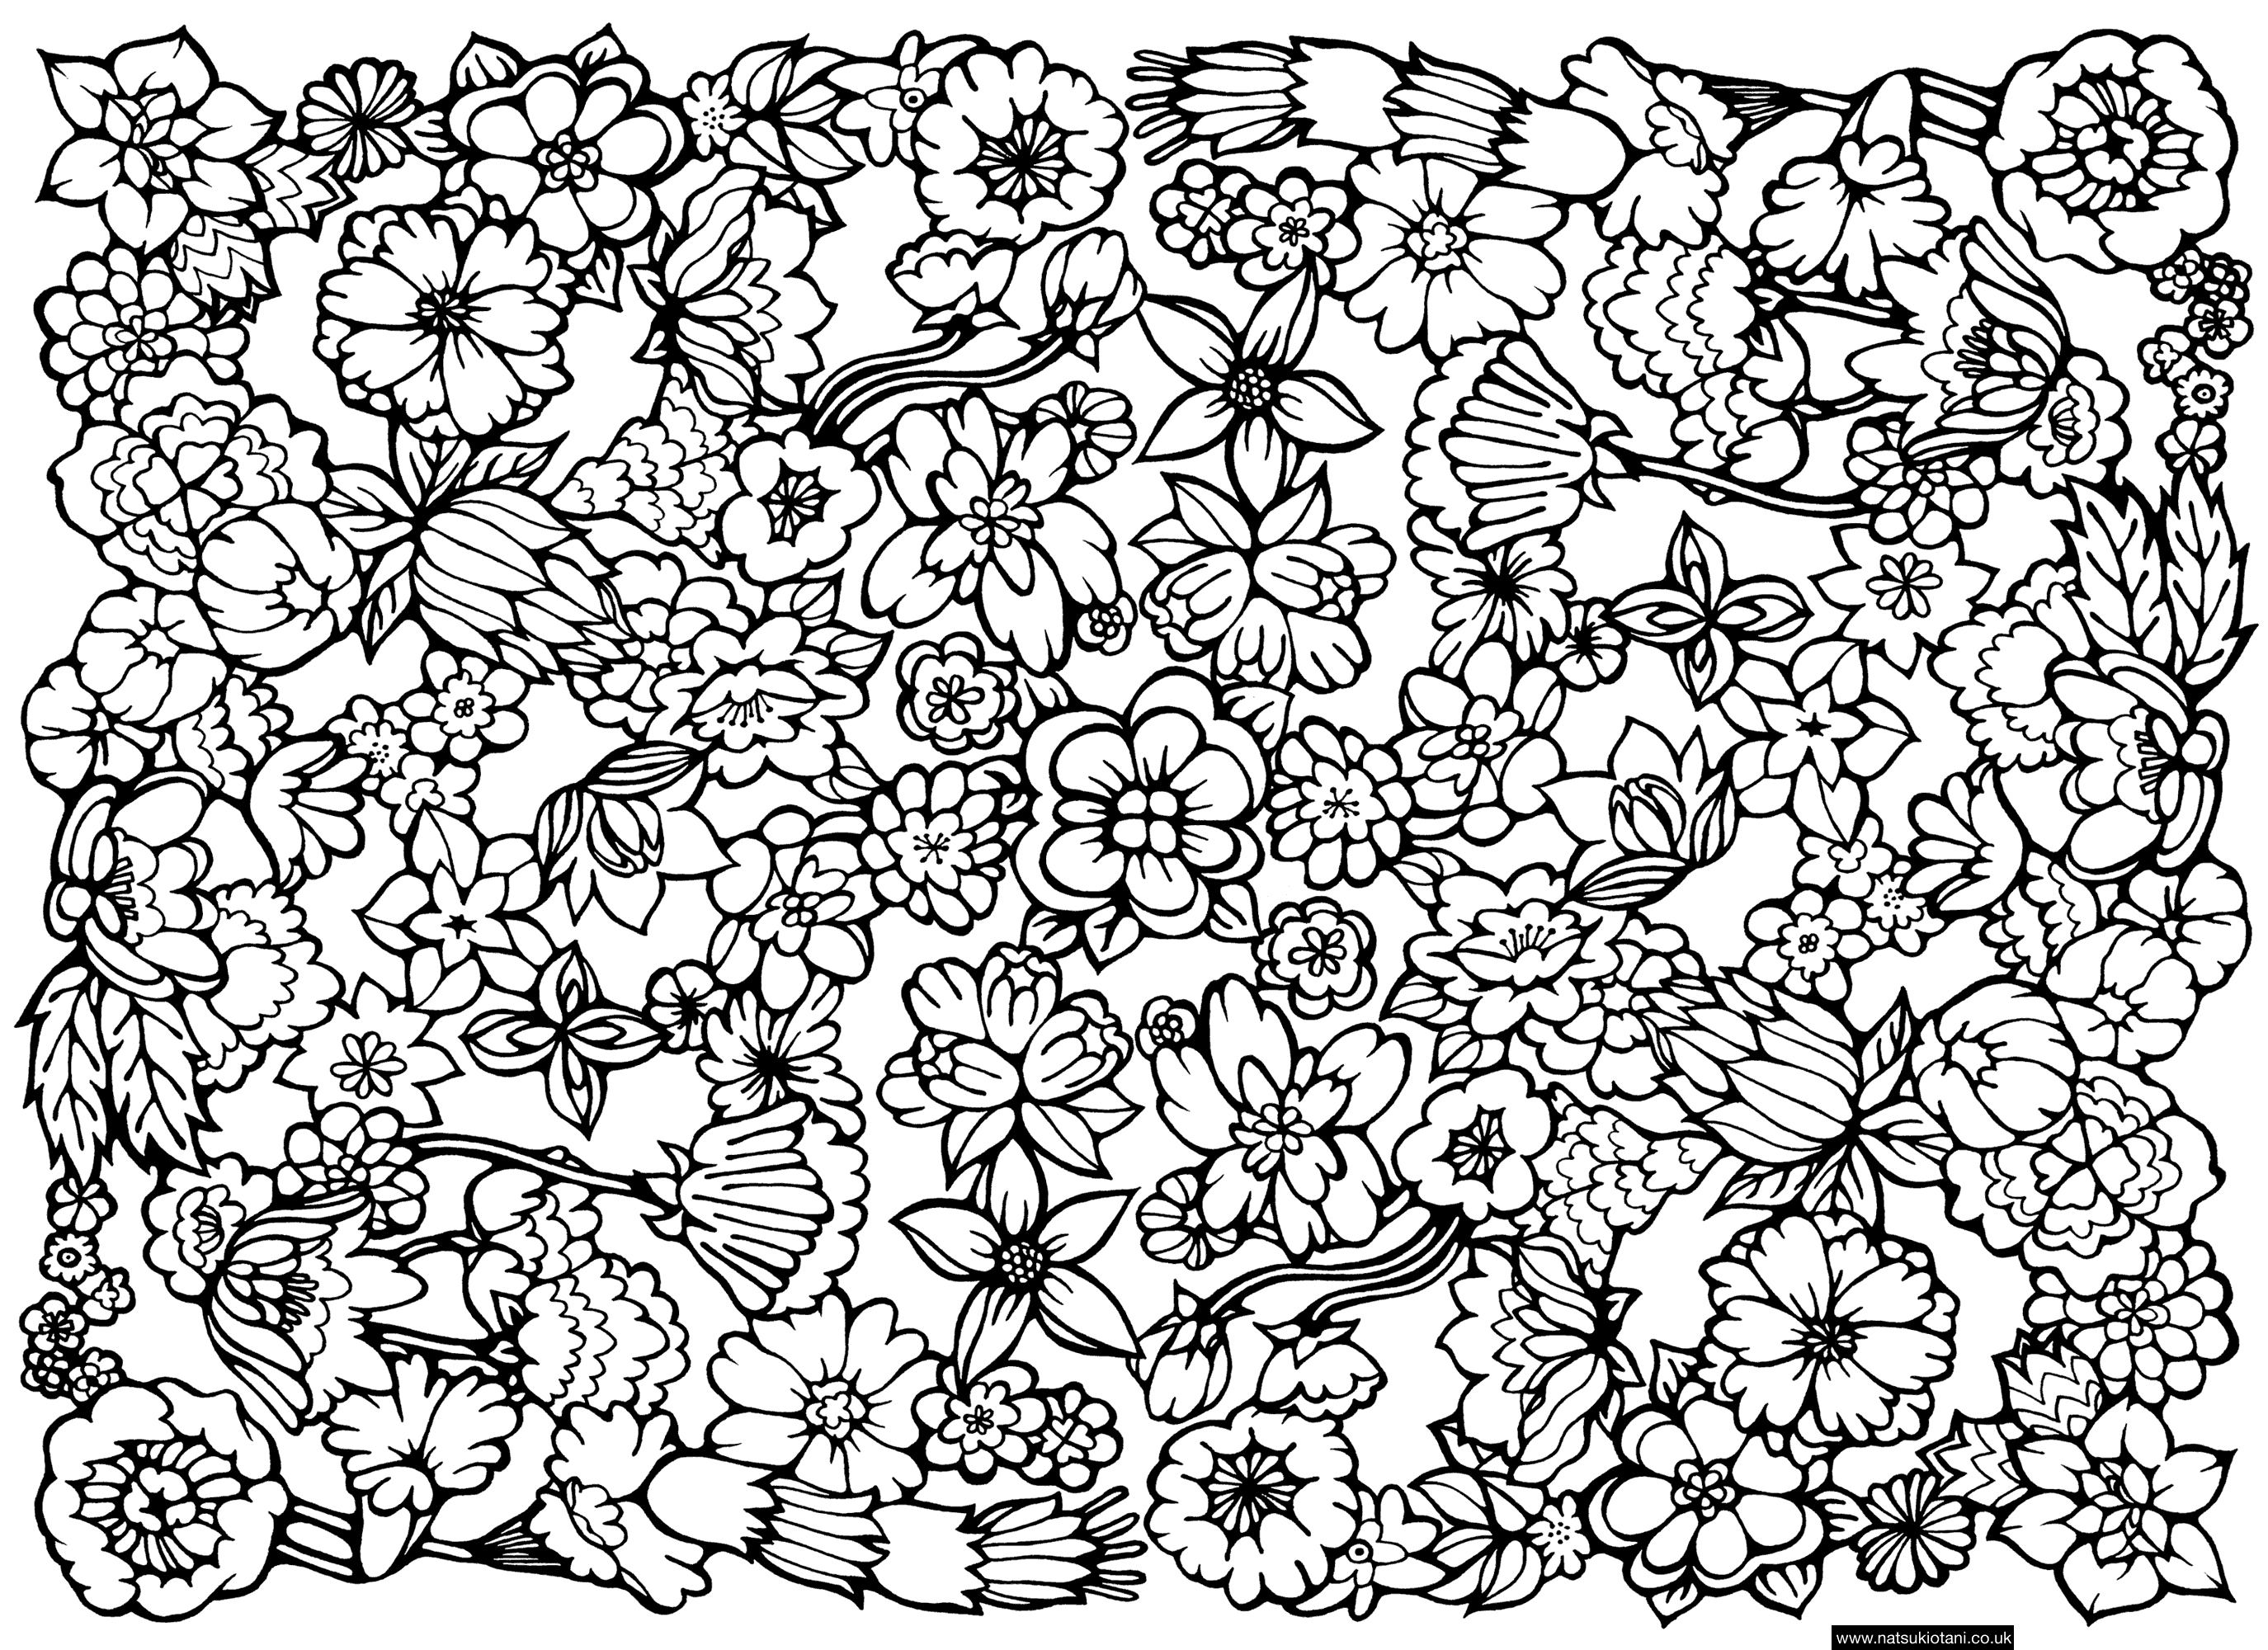 Coloring Pages Hard Designs - Coloring Home